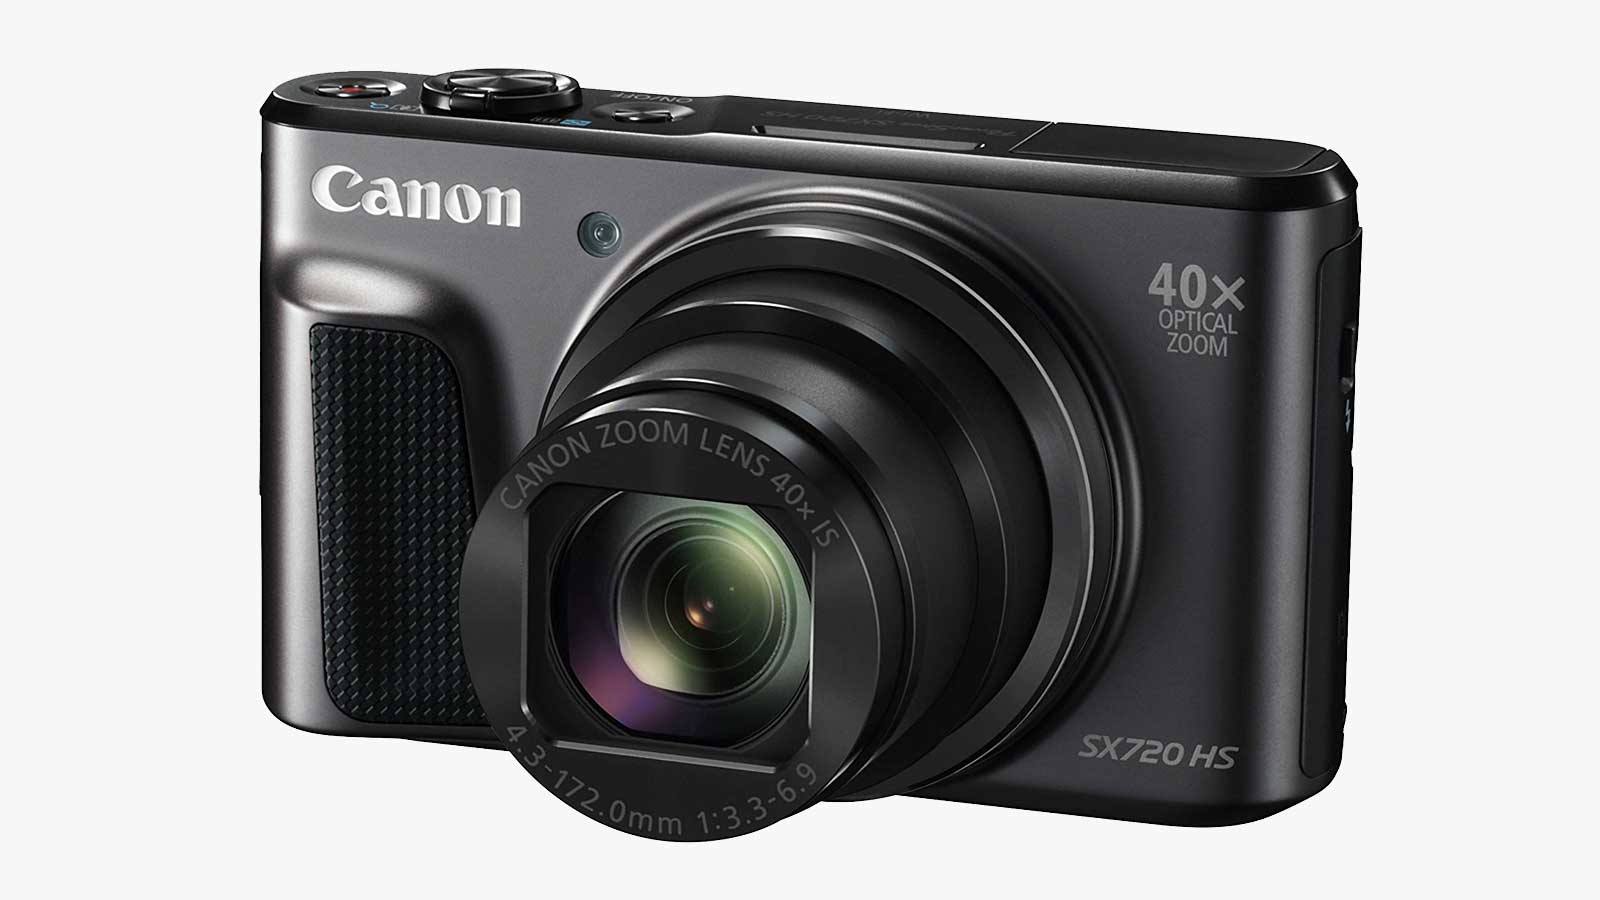 Canon Powershot SX720 HS Point-And-Shoot Camera